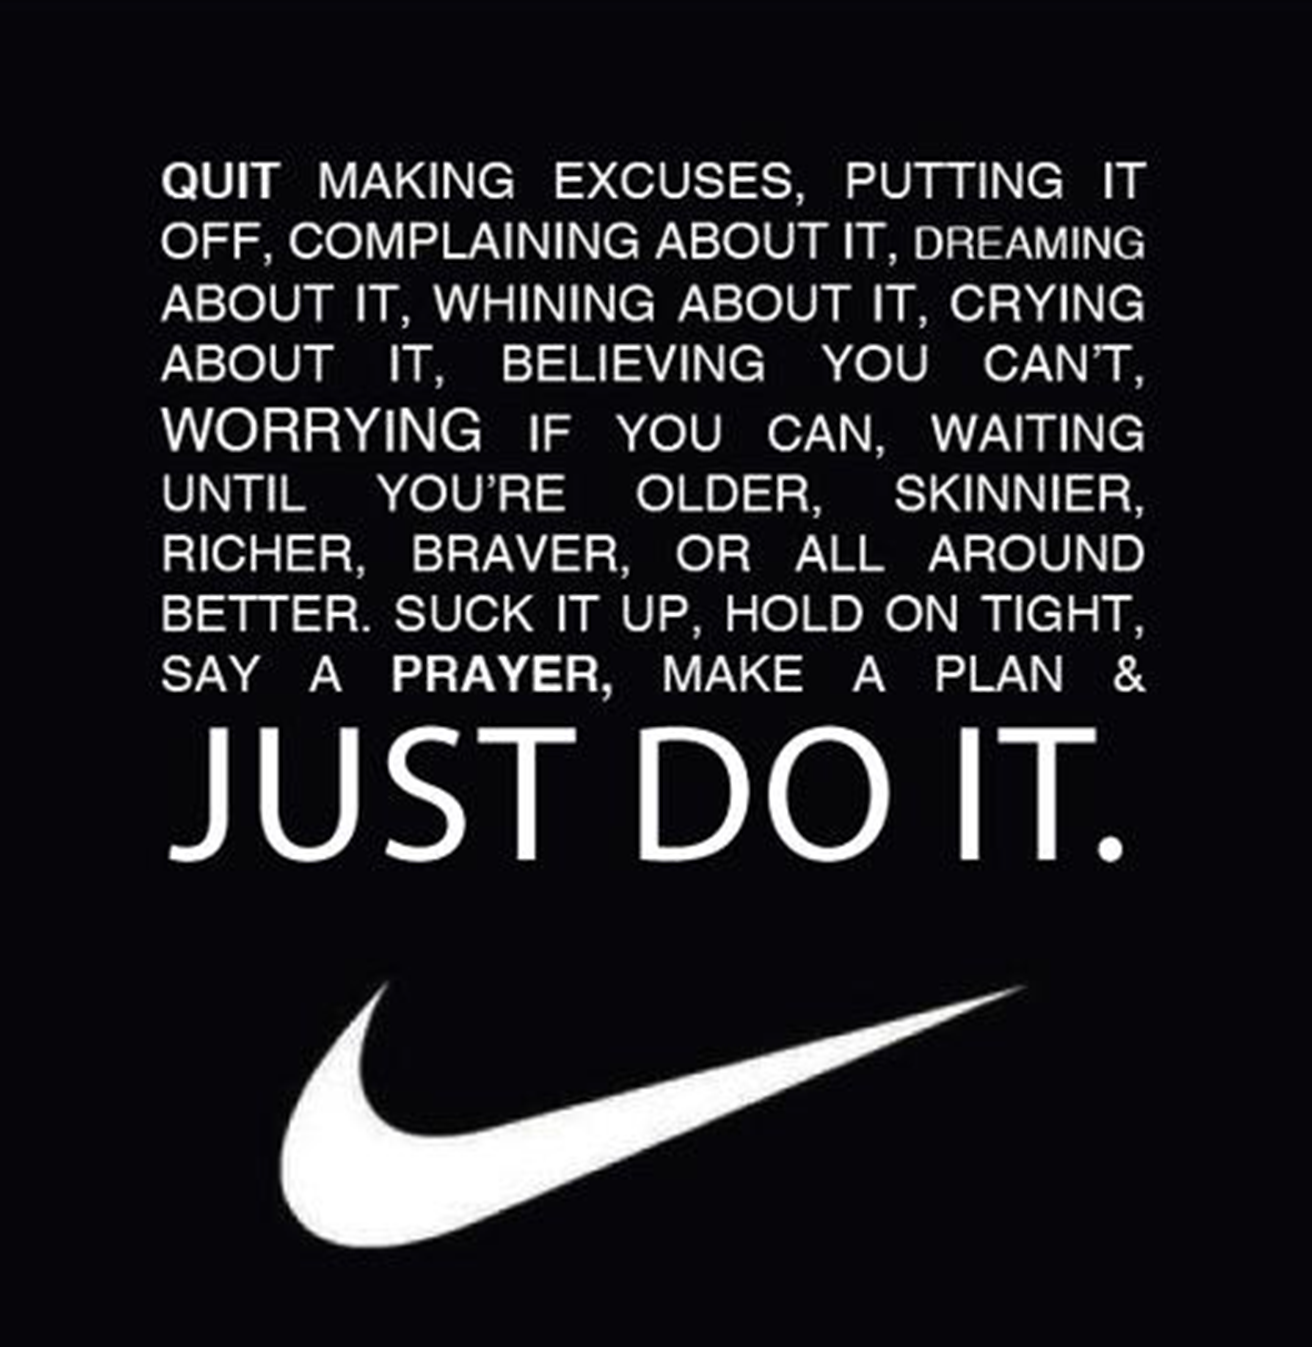 Just Do It Quotes Advice From Nike That I Think Works Well For Your Career Path As